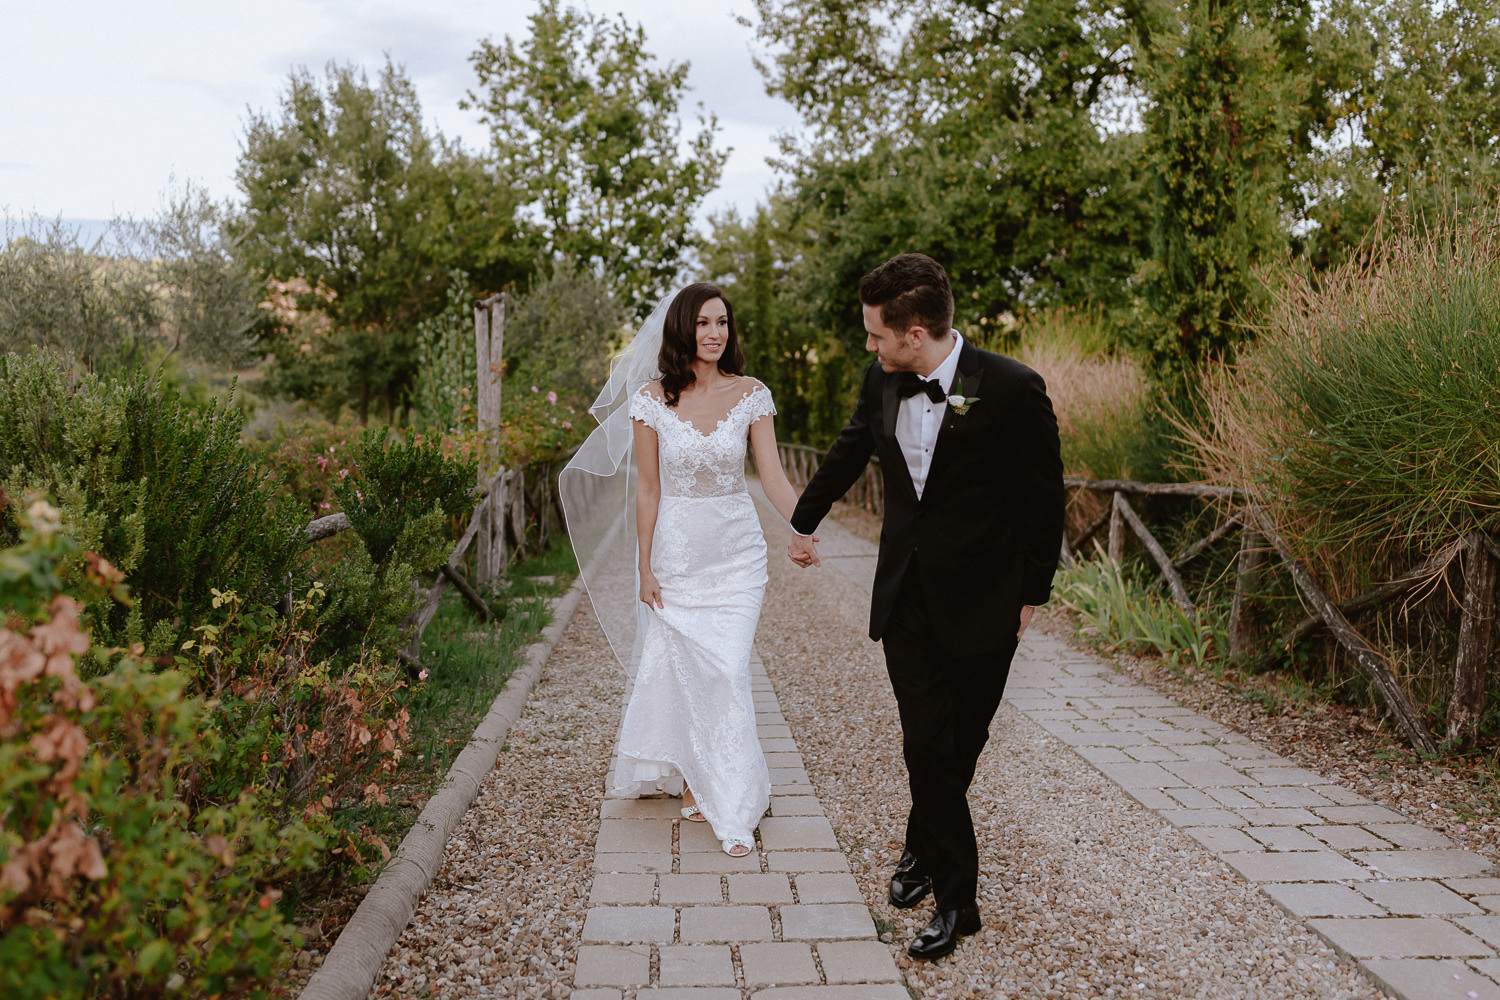 intimate wedding private villa tuscany photographer bride groom intimate portrait photos